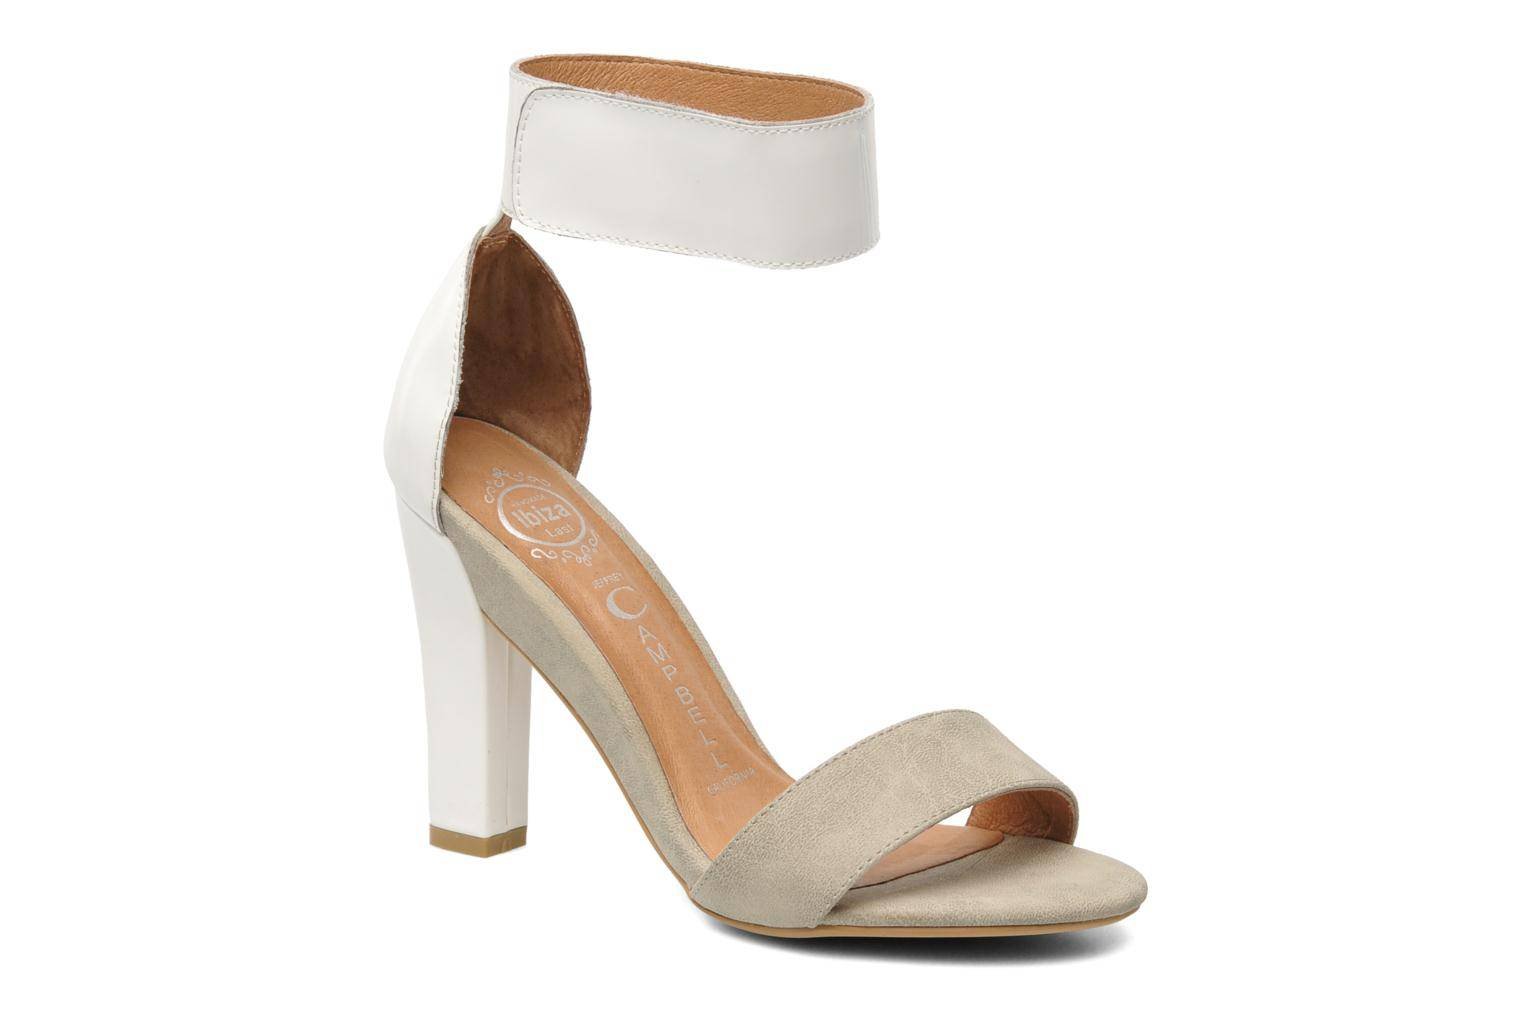 Jeffrey Campbell - JC-093-1 by  - Sandaalit Naisille  / Beige